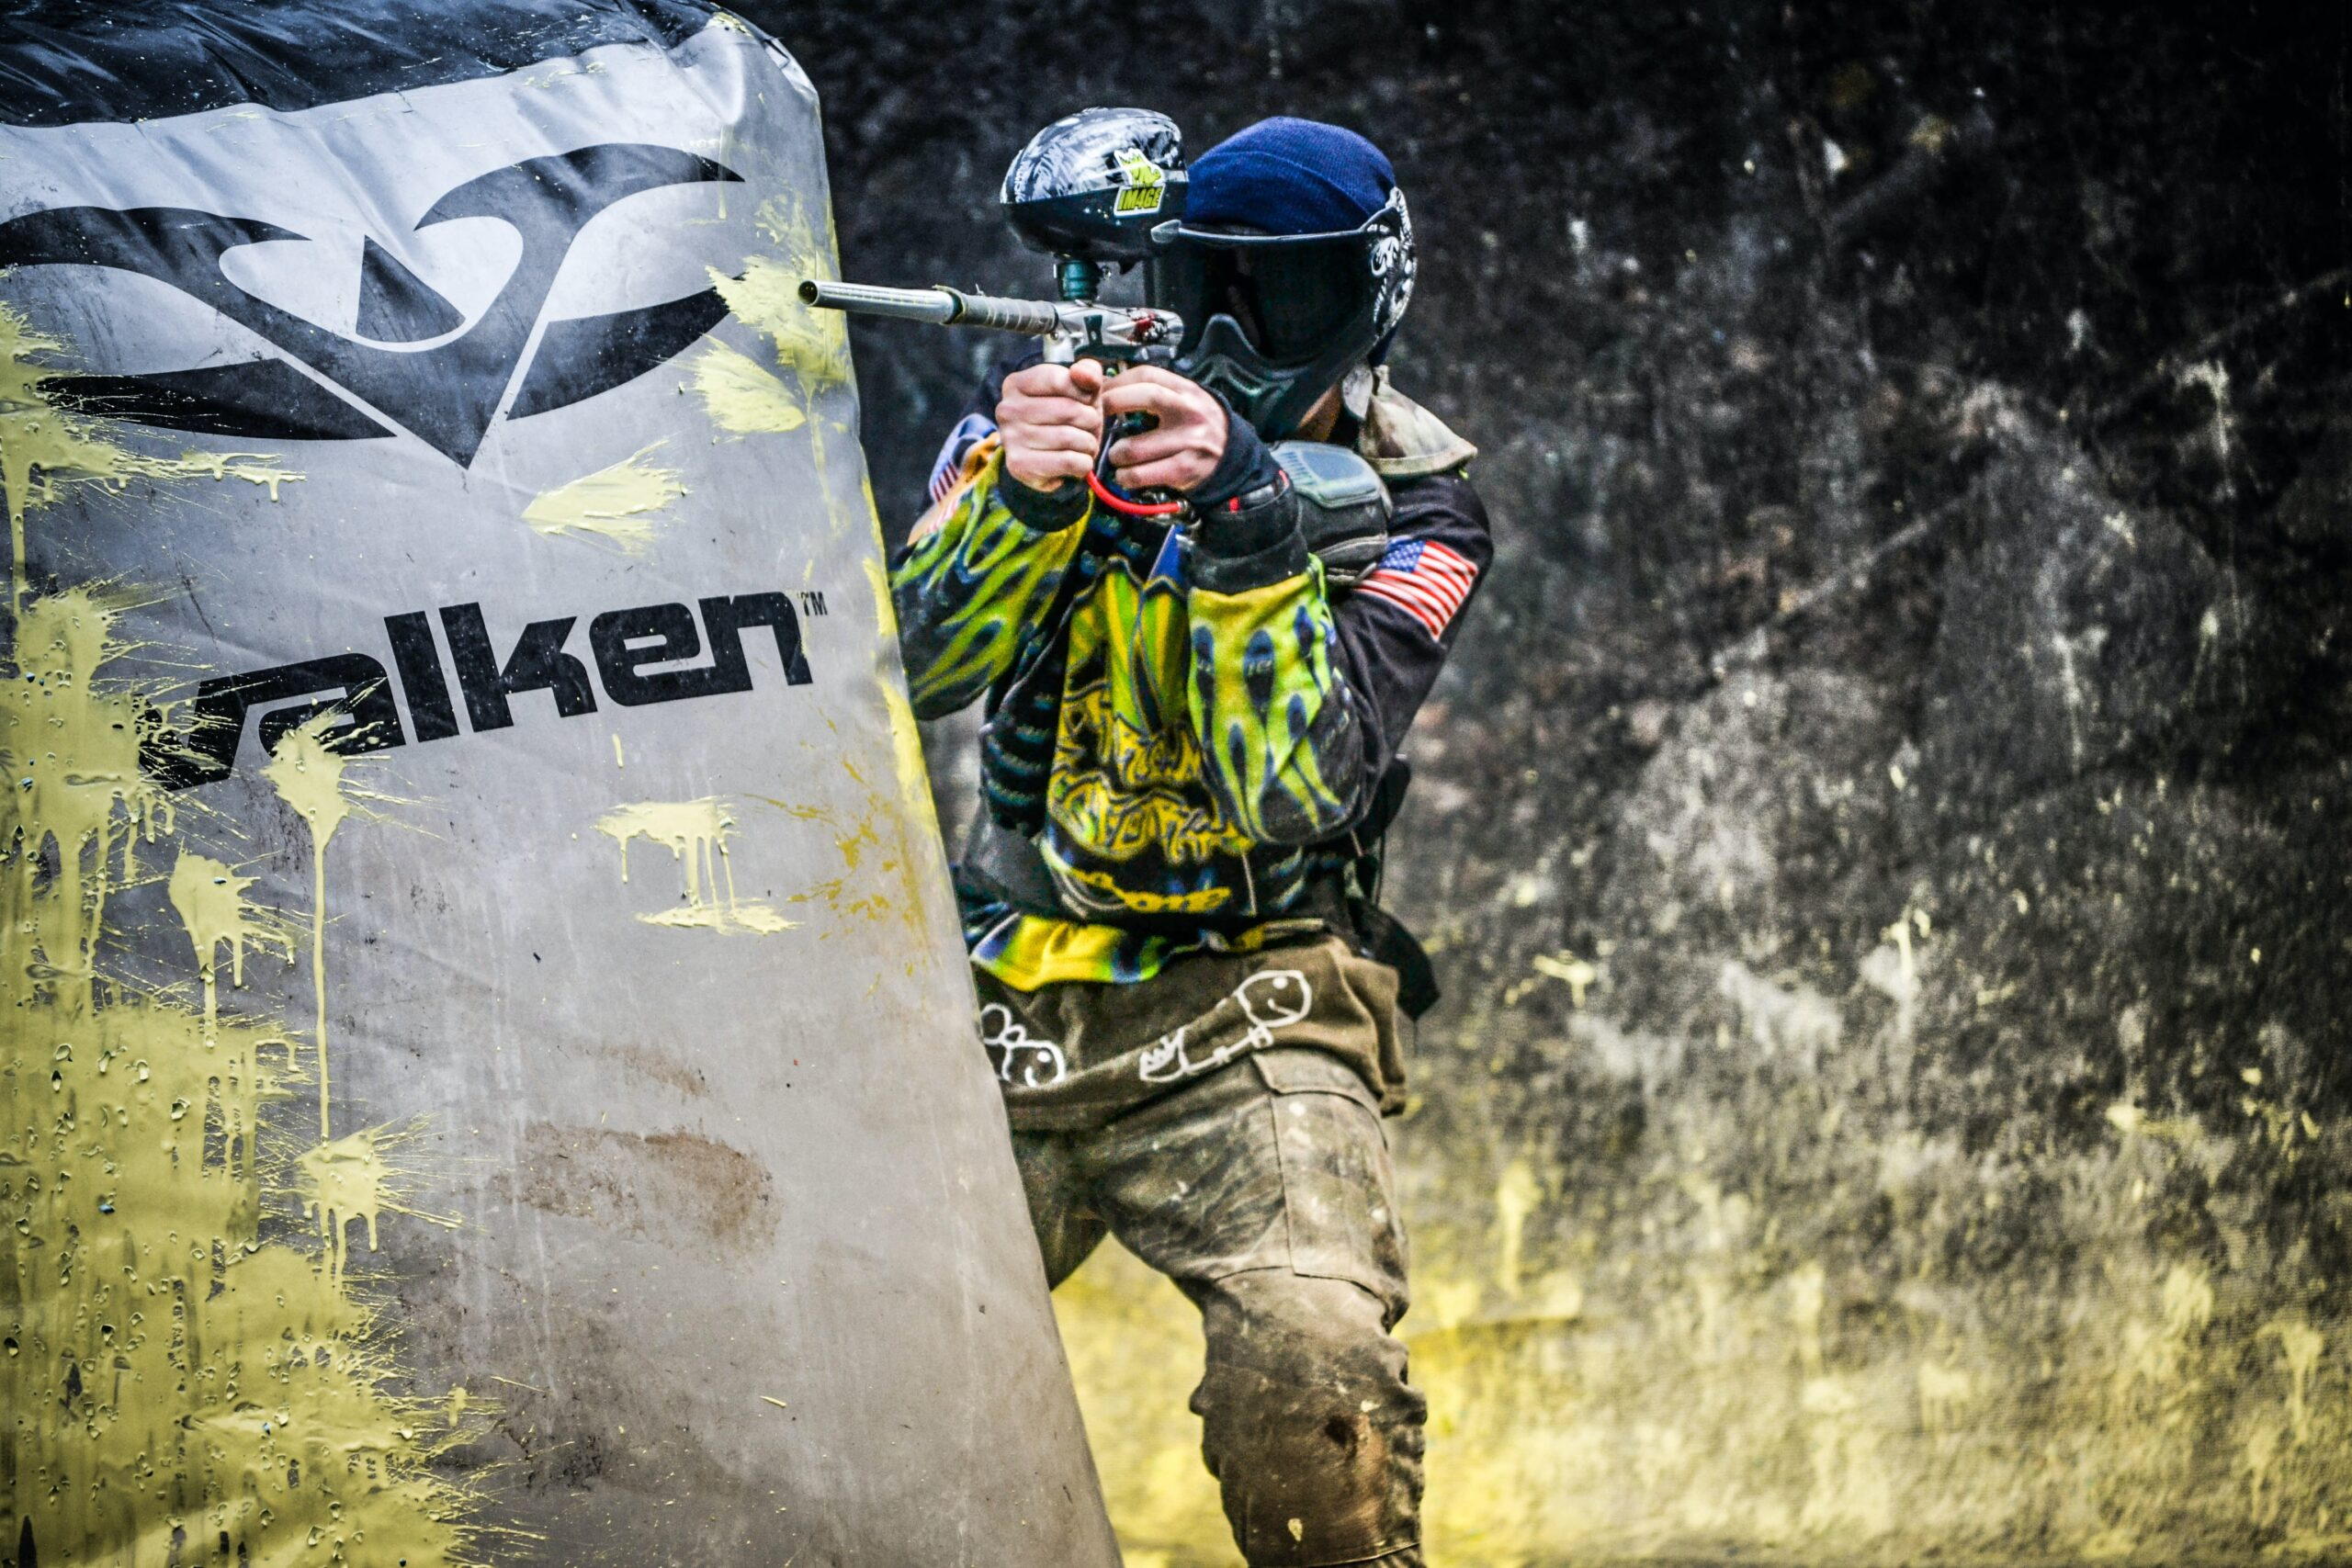 Paintball Rules: Safety Rules and Regulations